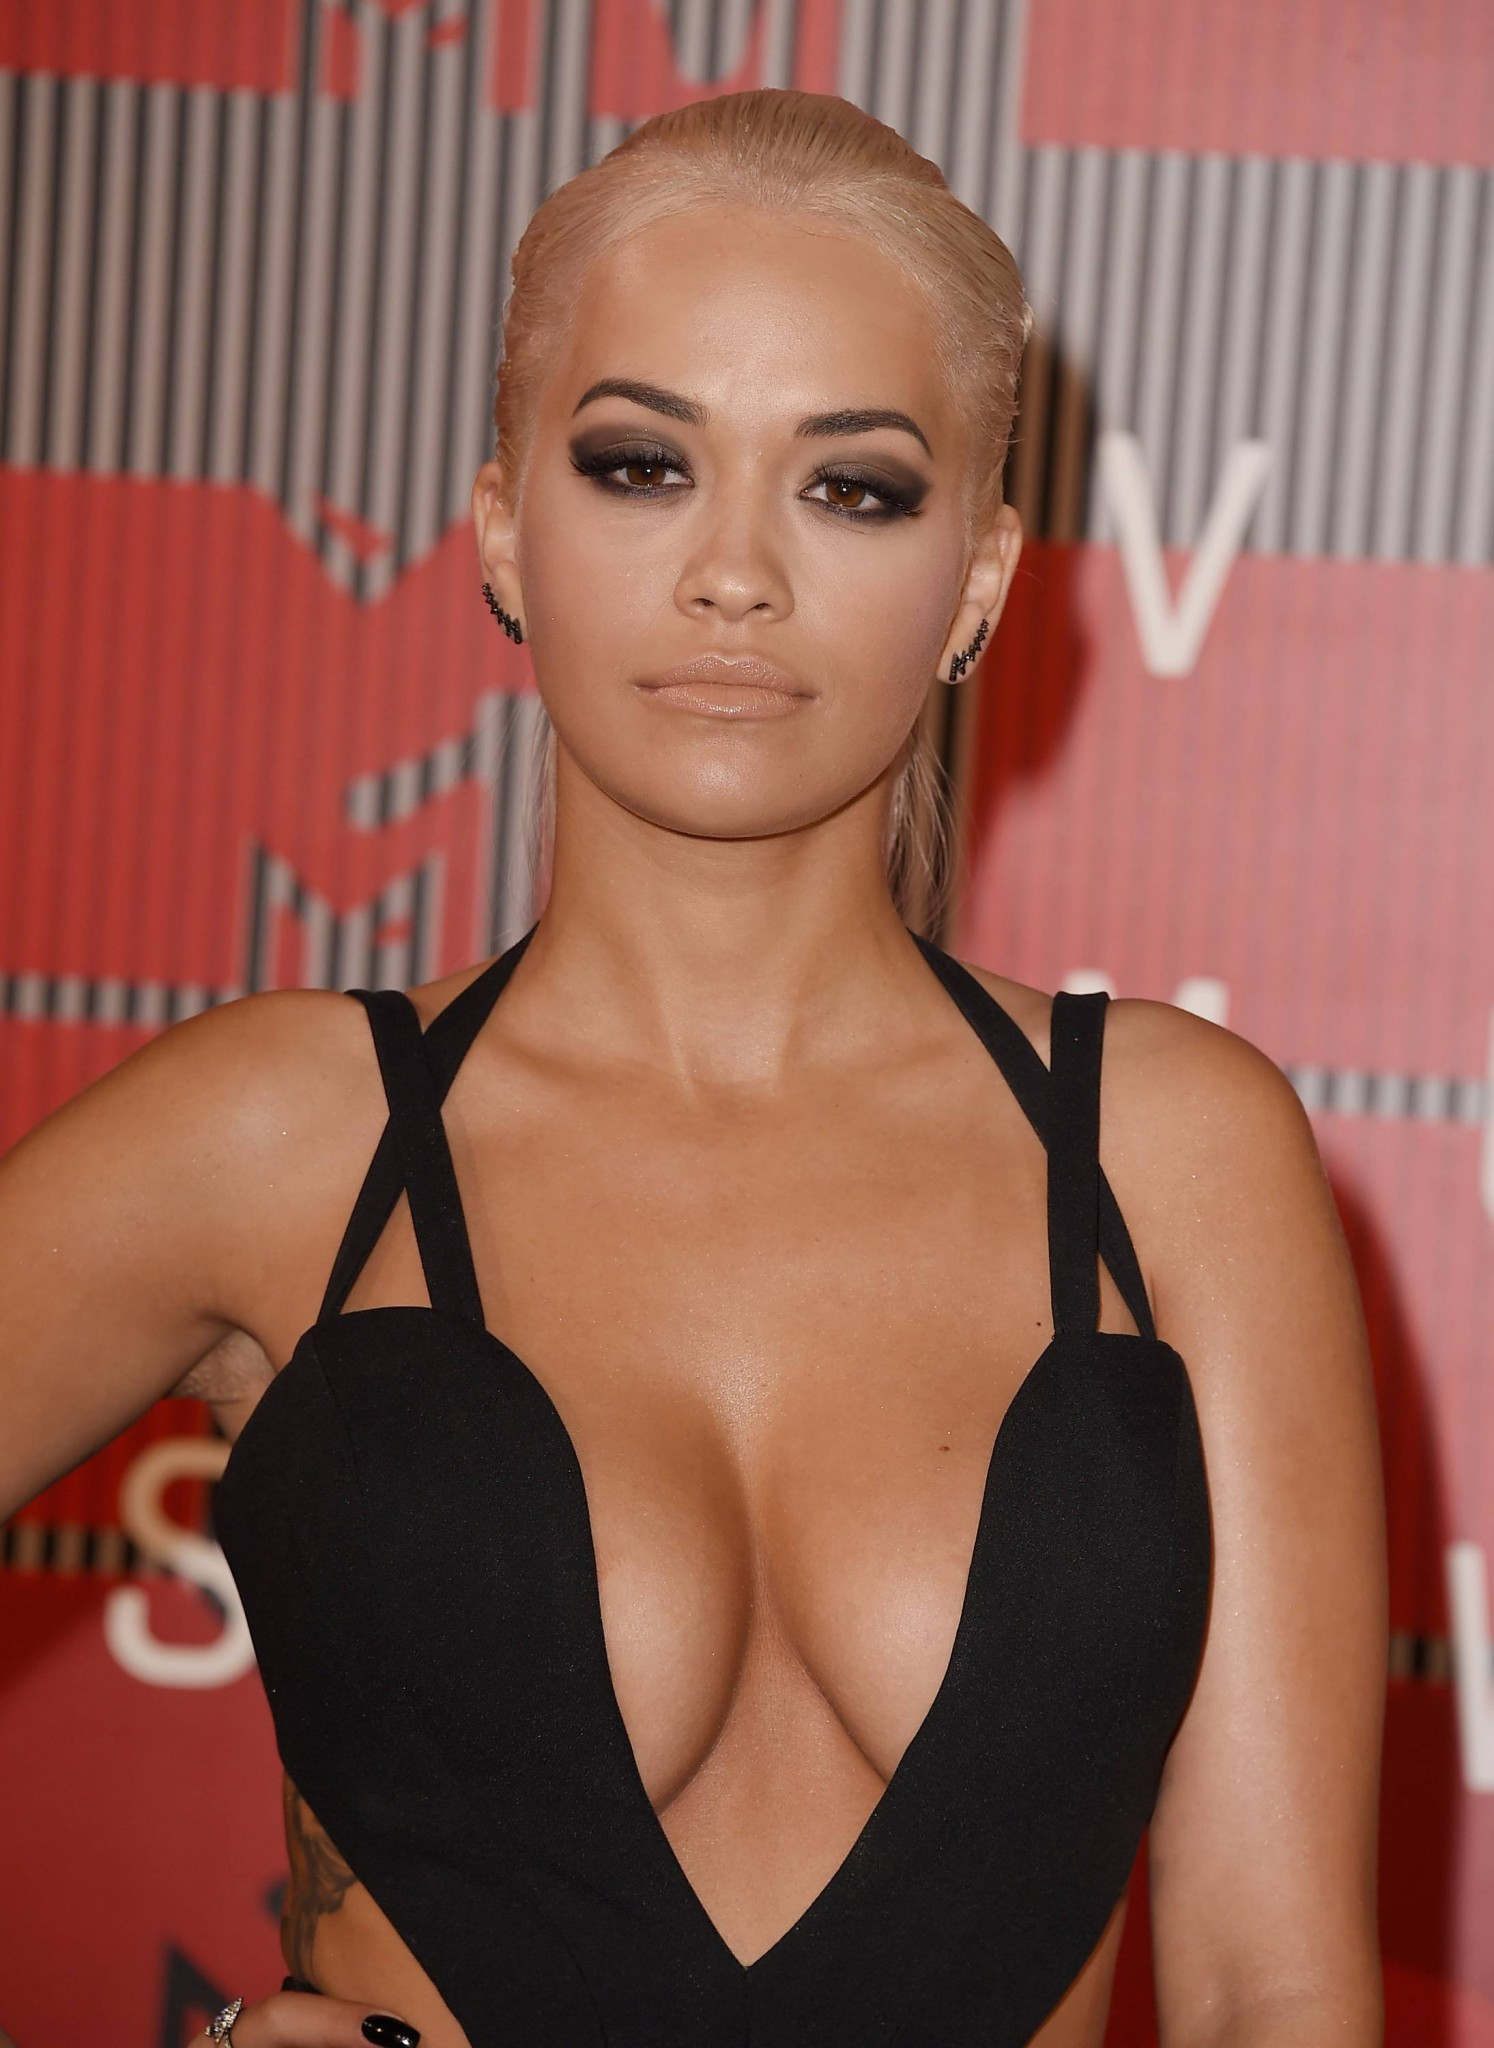 rita-ora-huge-cleavage-at-the-2015-mtv-video-music-awards-10